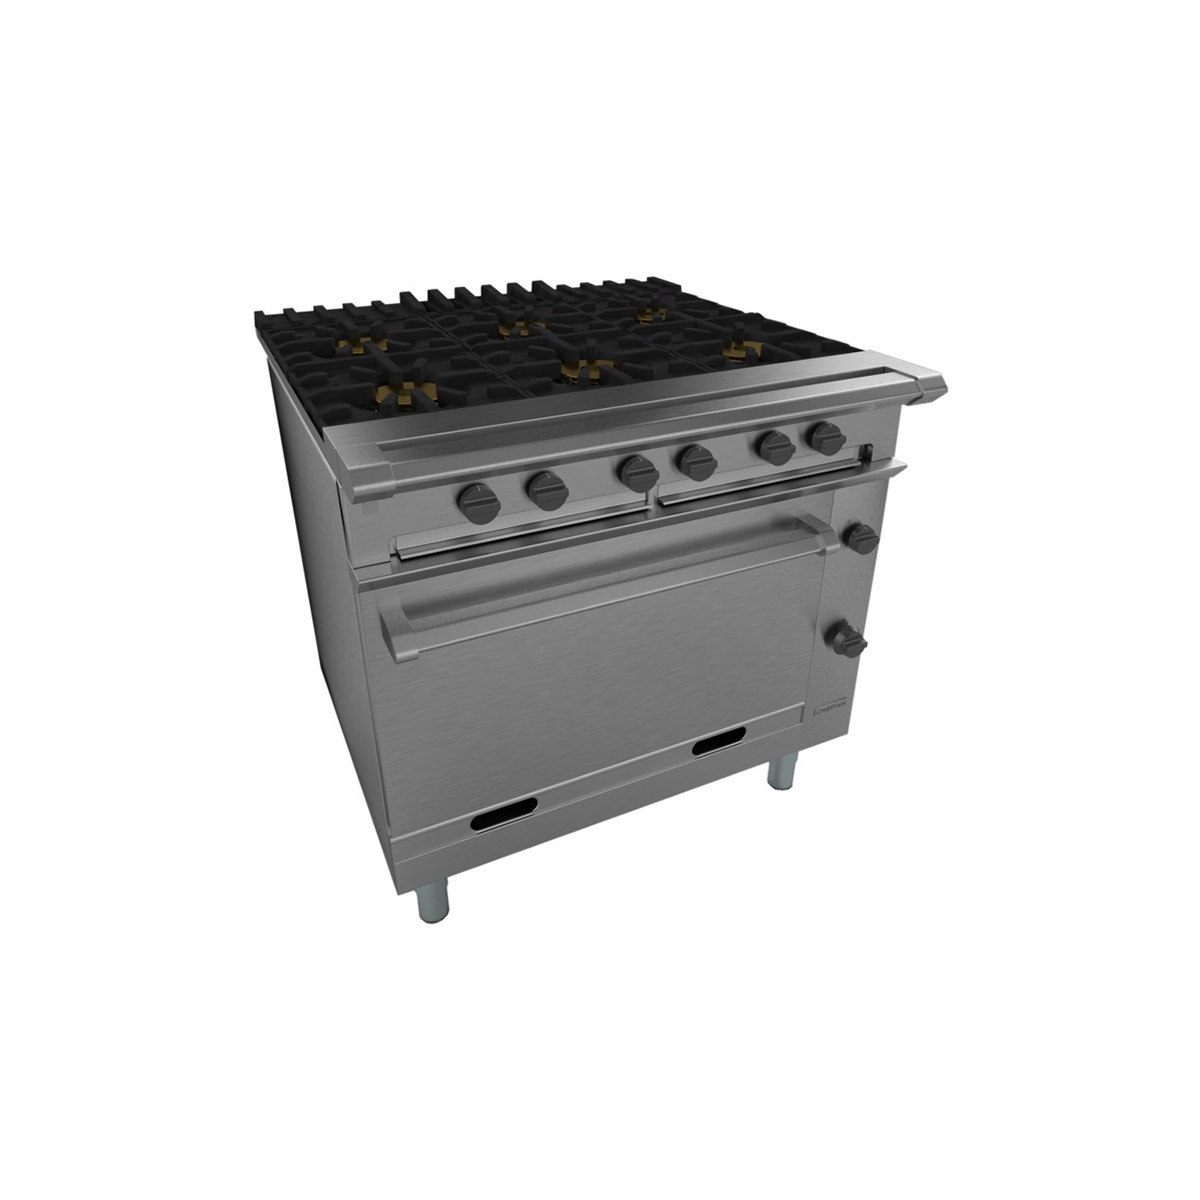 Falcon Chieftain 6x Burner Gas Oven Range On Casters G1066X